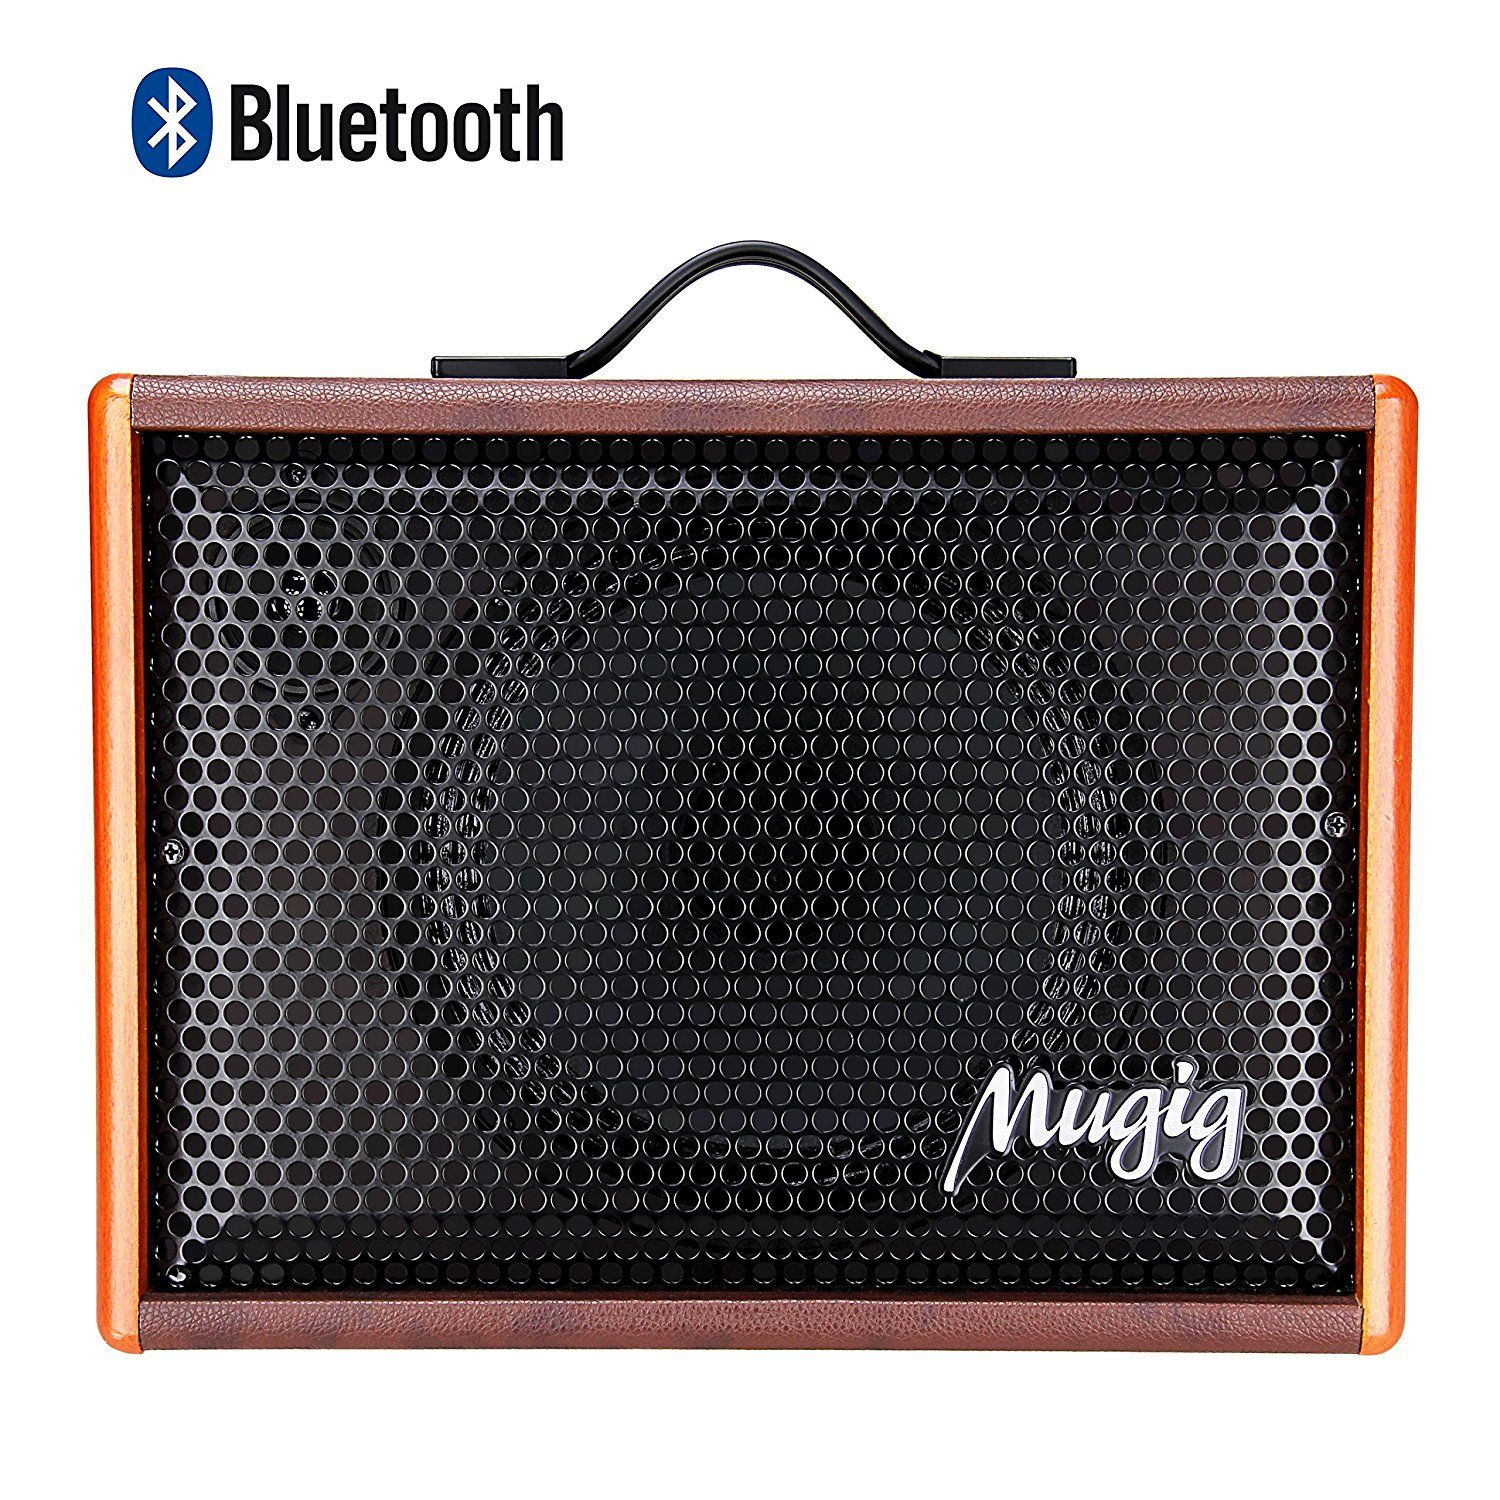 Mugig Guitar Amplifier For Acoustic Guitar Portable Chargeable Vocal Amp 25w Guitar Speaker For Karaoke Str Acoustic Guitar Amp Best Acoustic Guitar Guitar Amp